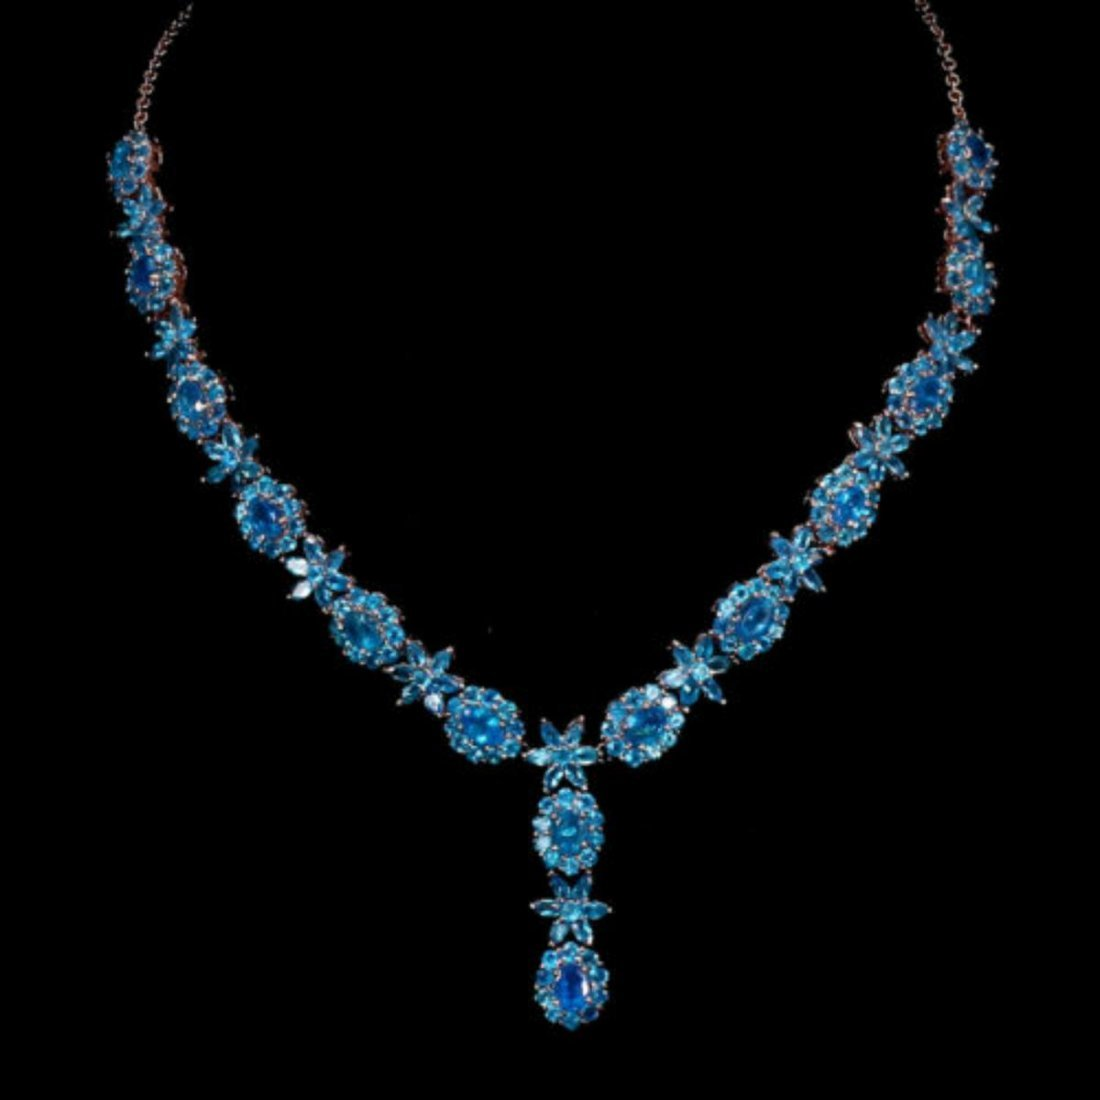 Natural Rare AAA Neon Blue Apatite 194 Cts Necklace